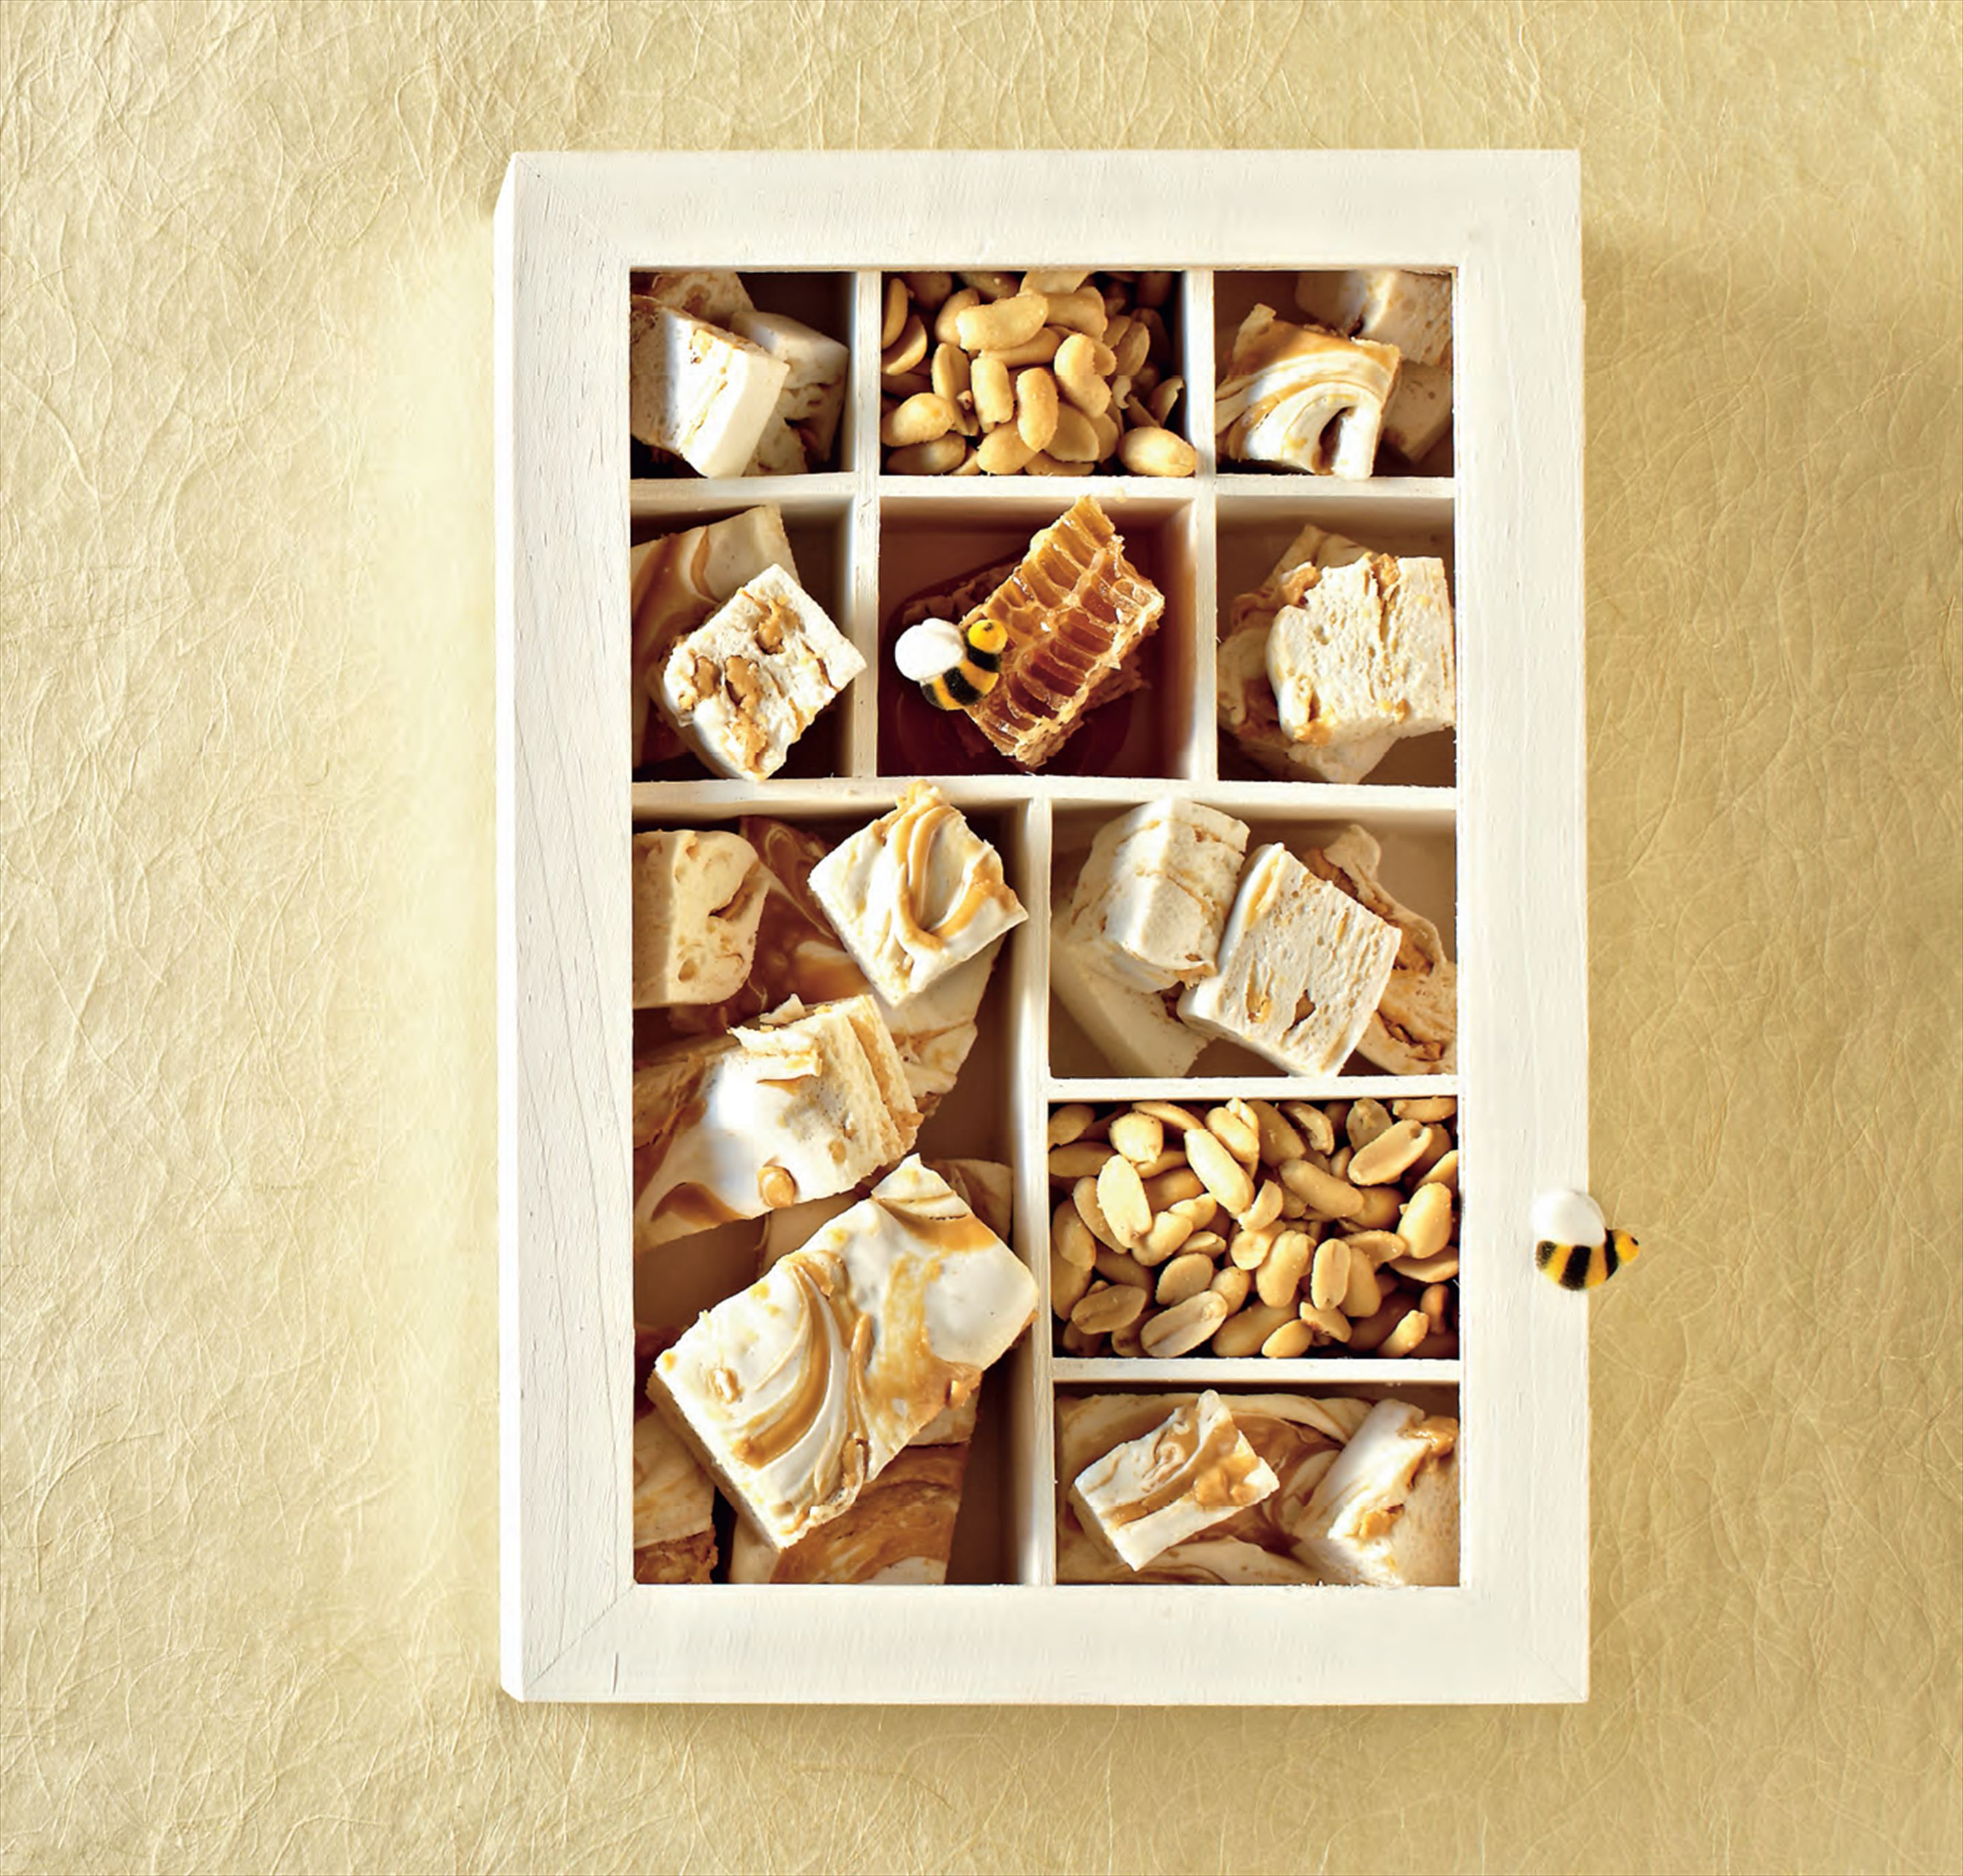 Honey & peanut butter swirl marshmallows